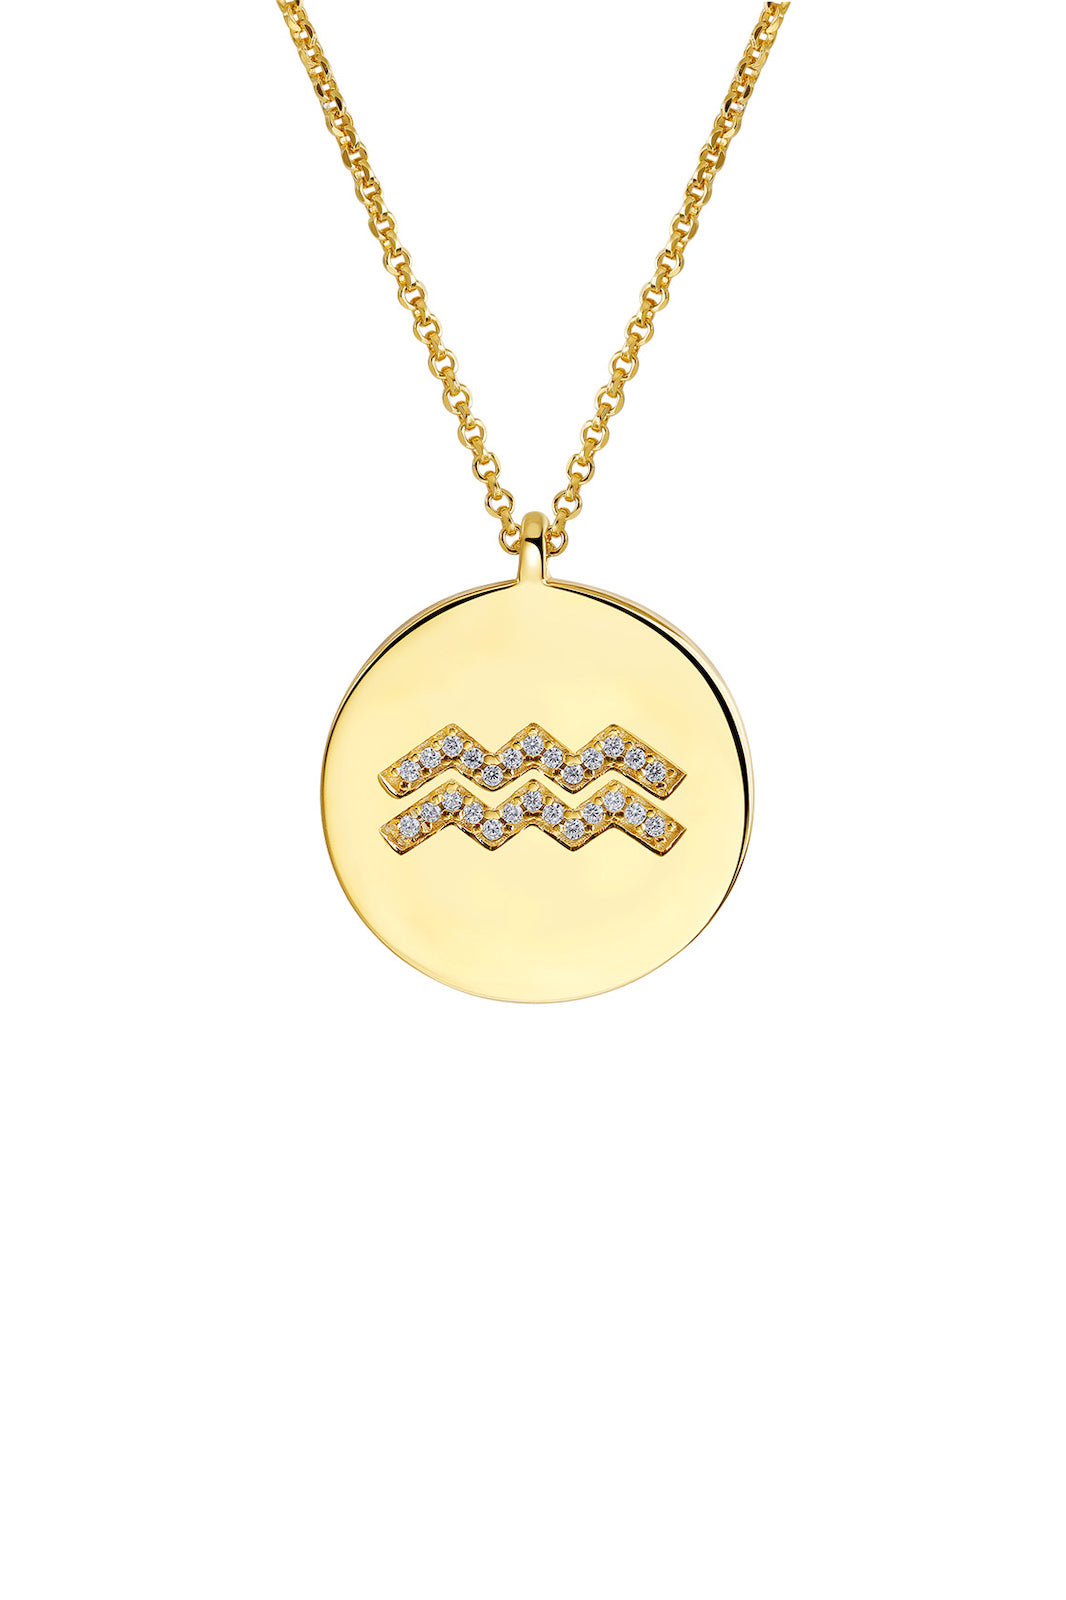 Gold Plated Silver Zodiac Necklace - Aquarius Side View